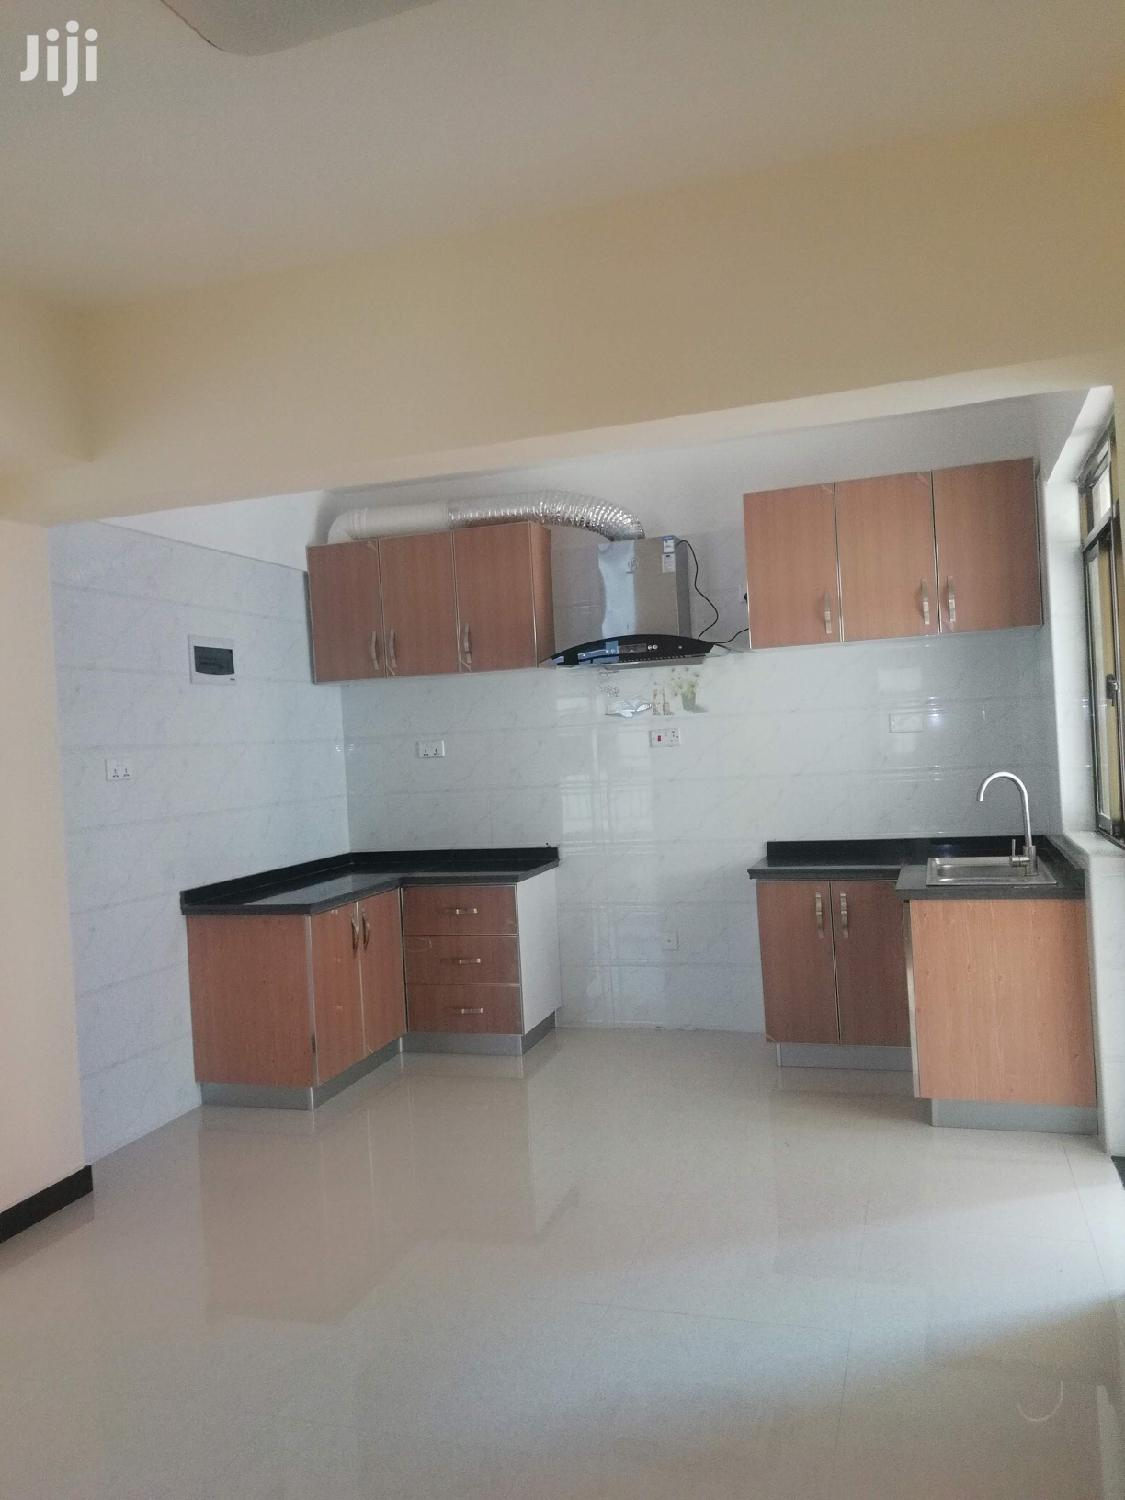 Luxury 2/3brs Apartment With Pool,Lift ,Gym and Secure | Houses & Apartments For Rent for sale in Kileleshwa, Nairobi, Kenya